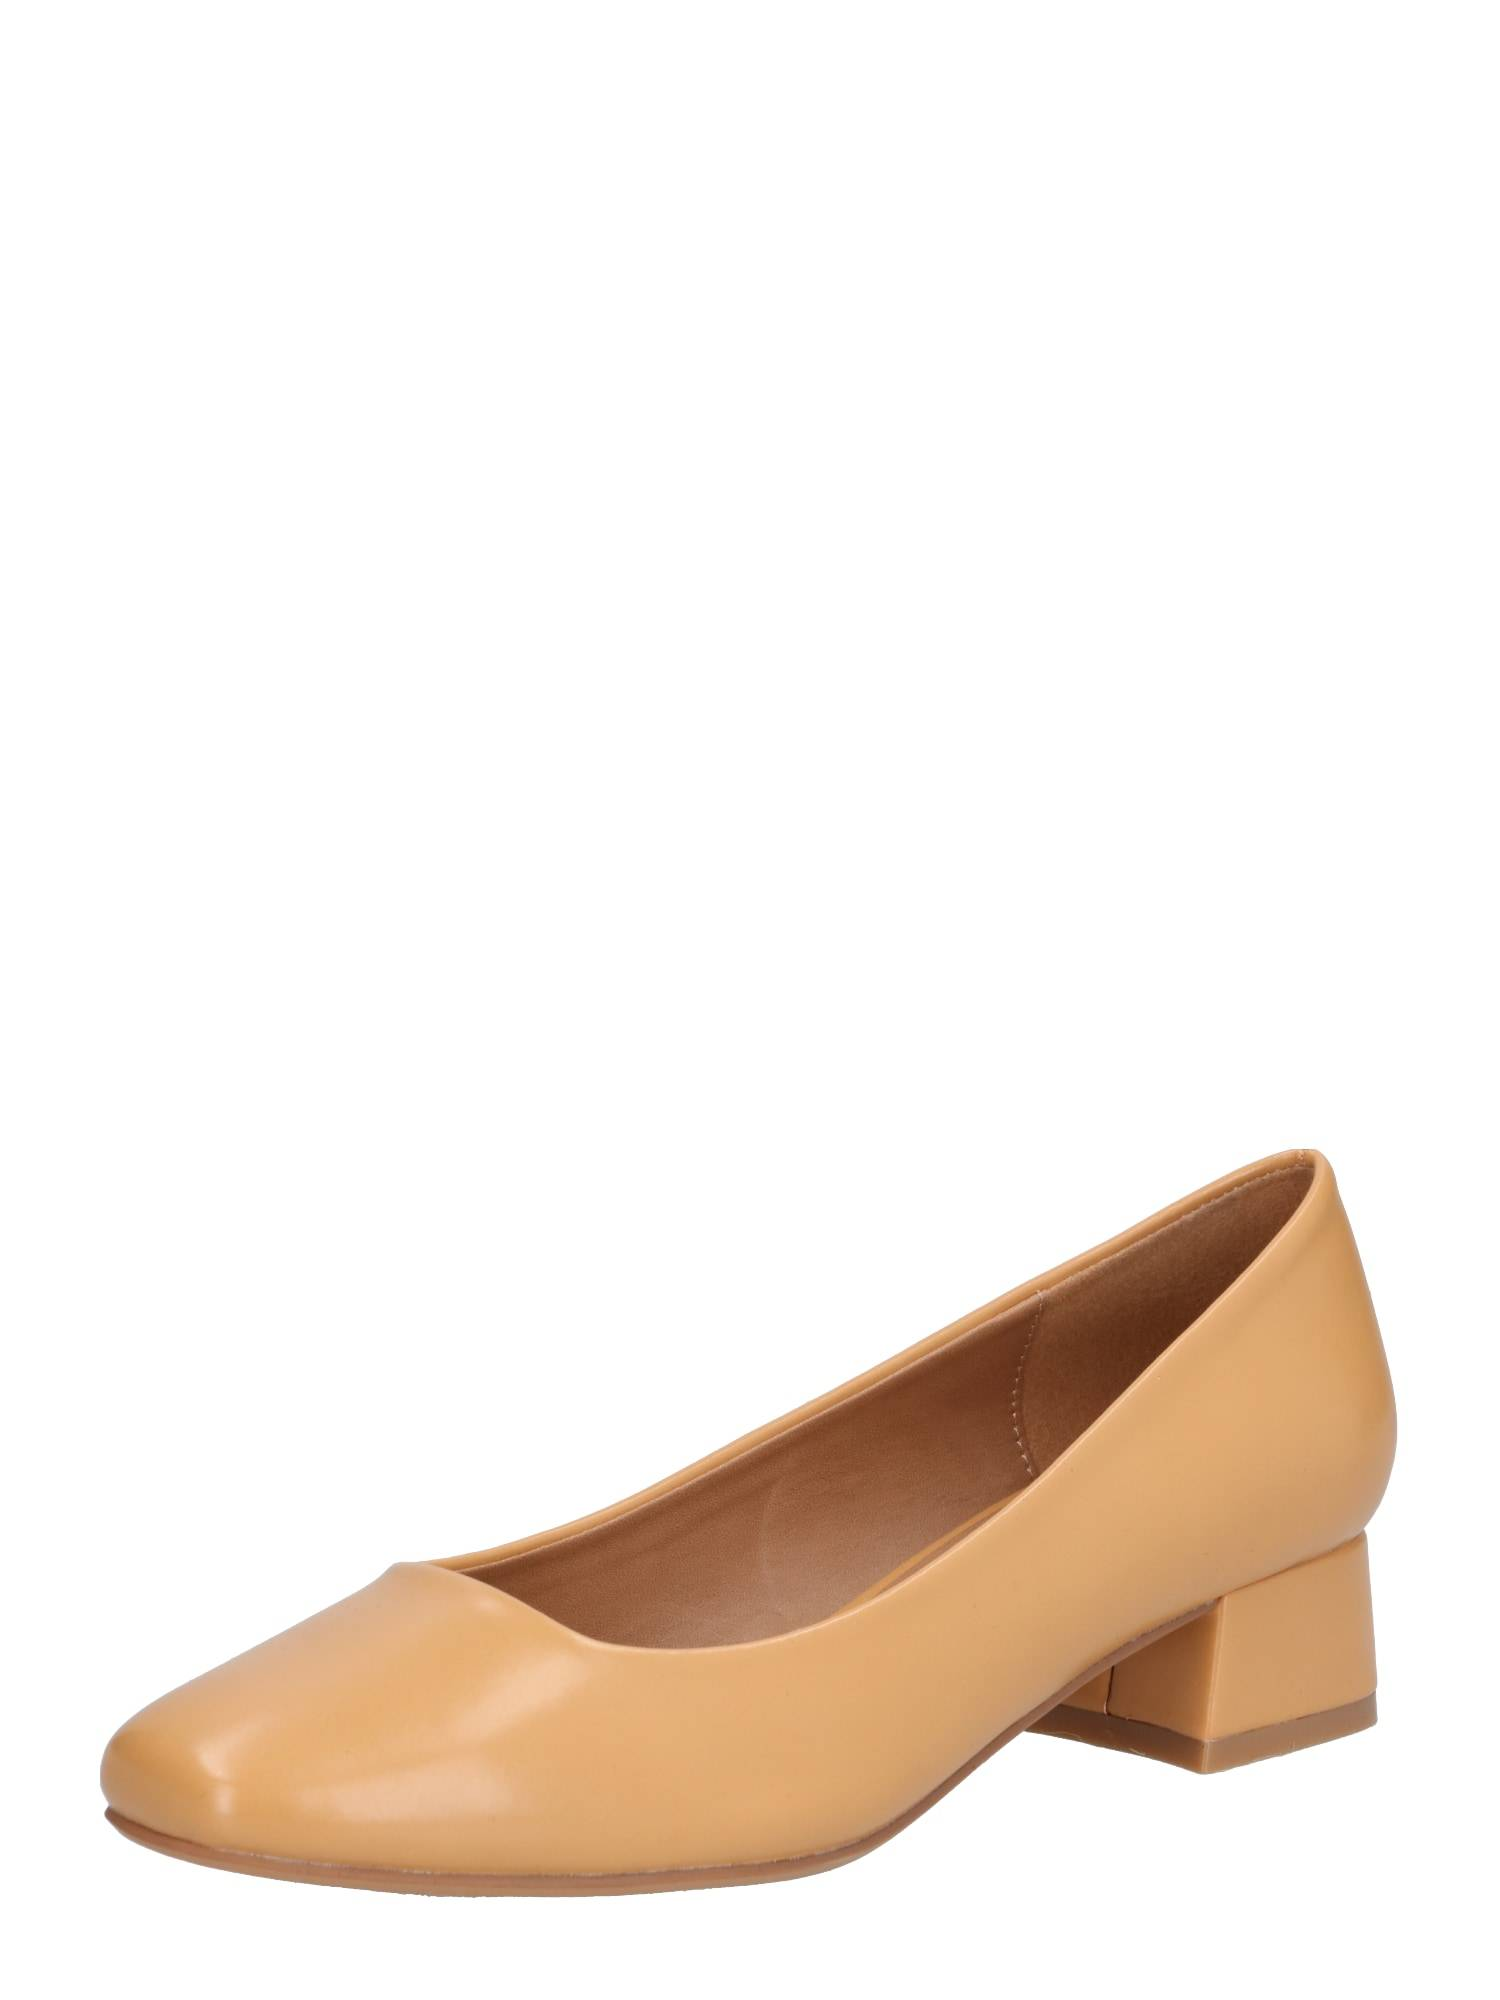 ABOUT YOU Escarpins 'Fiona'  - Beige - Taille: 36 - female